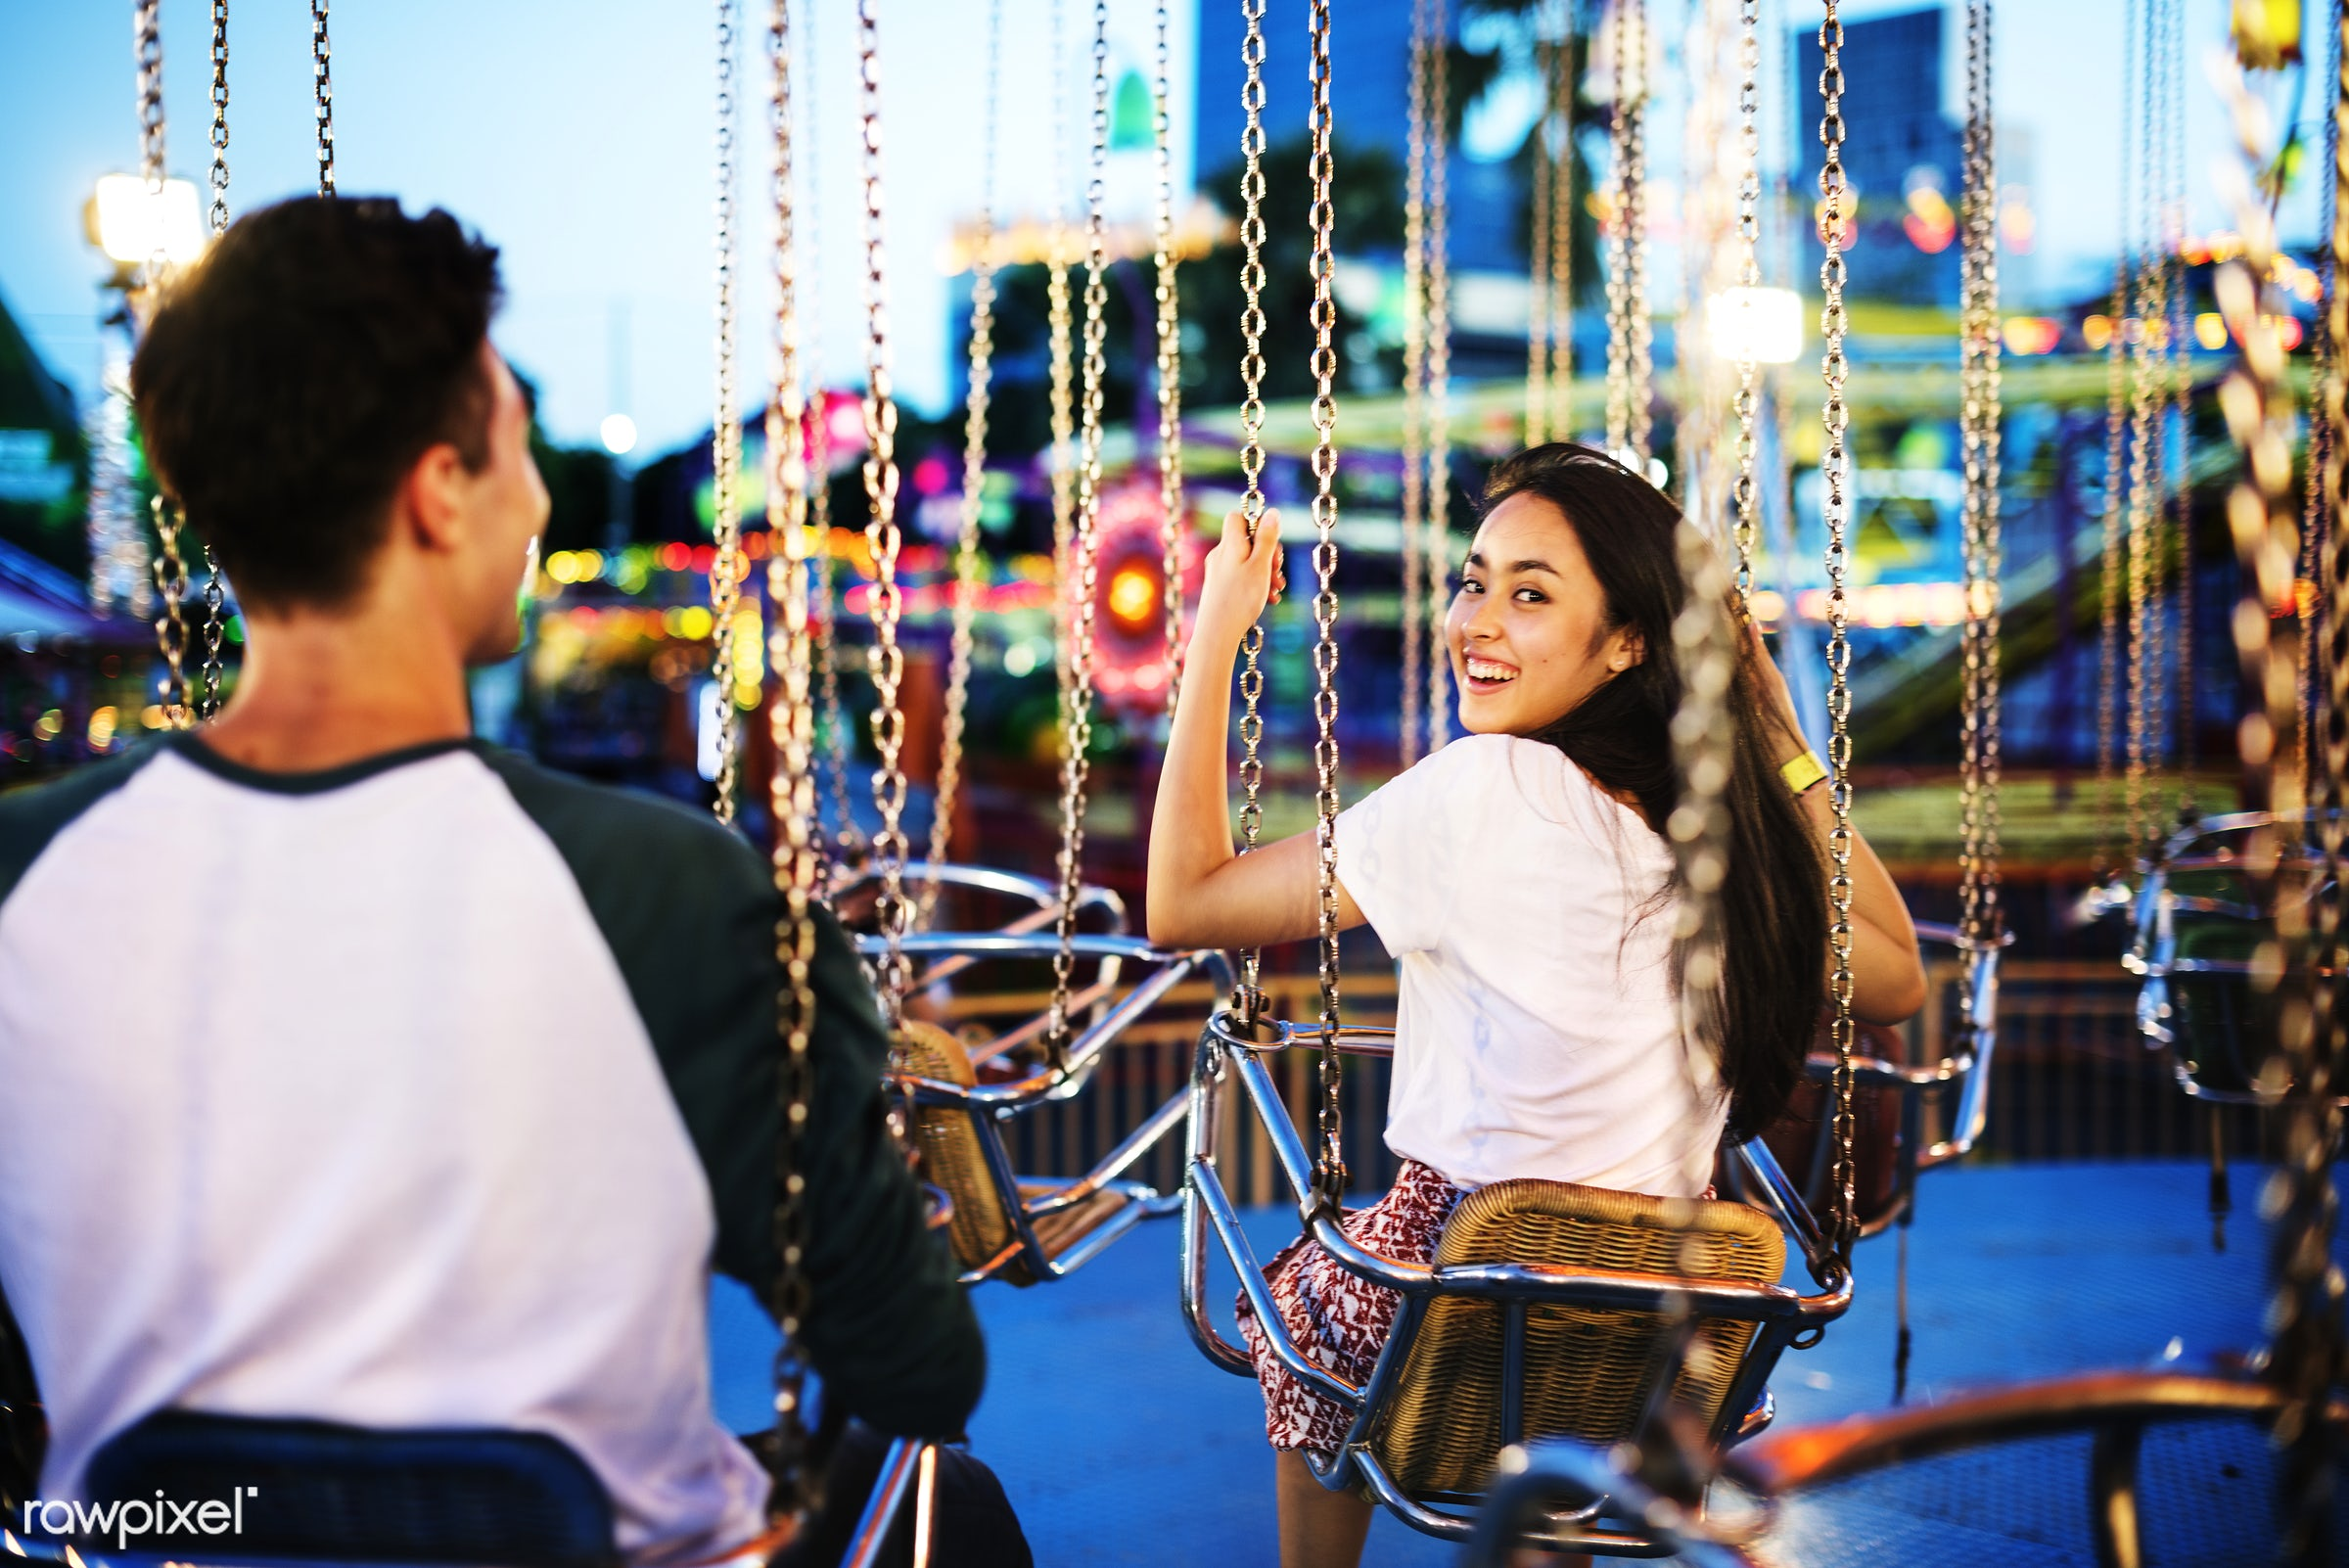 Young couple riding the swings at an amusement park - teen, girl, date, carnival, amusement park, candid, dating, indian,...